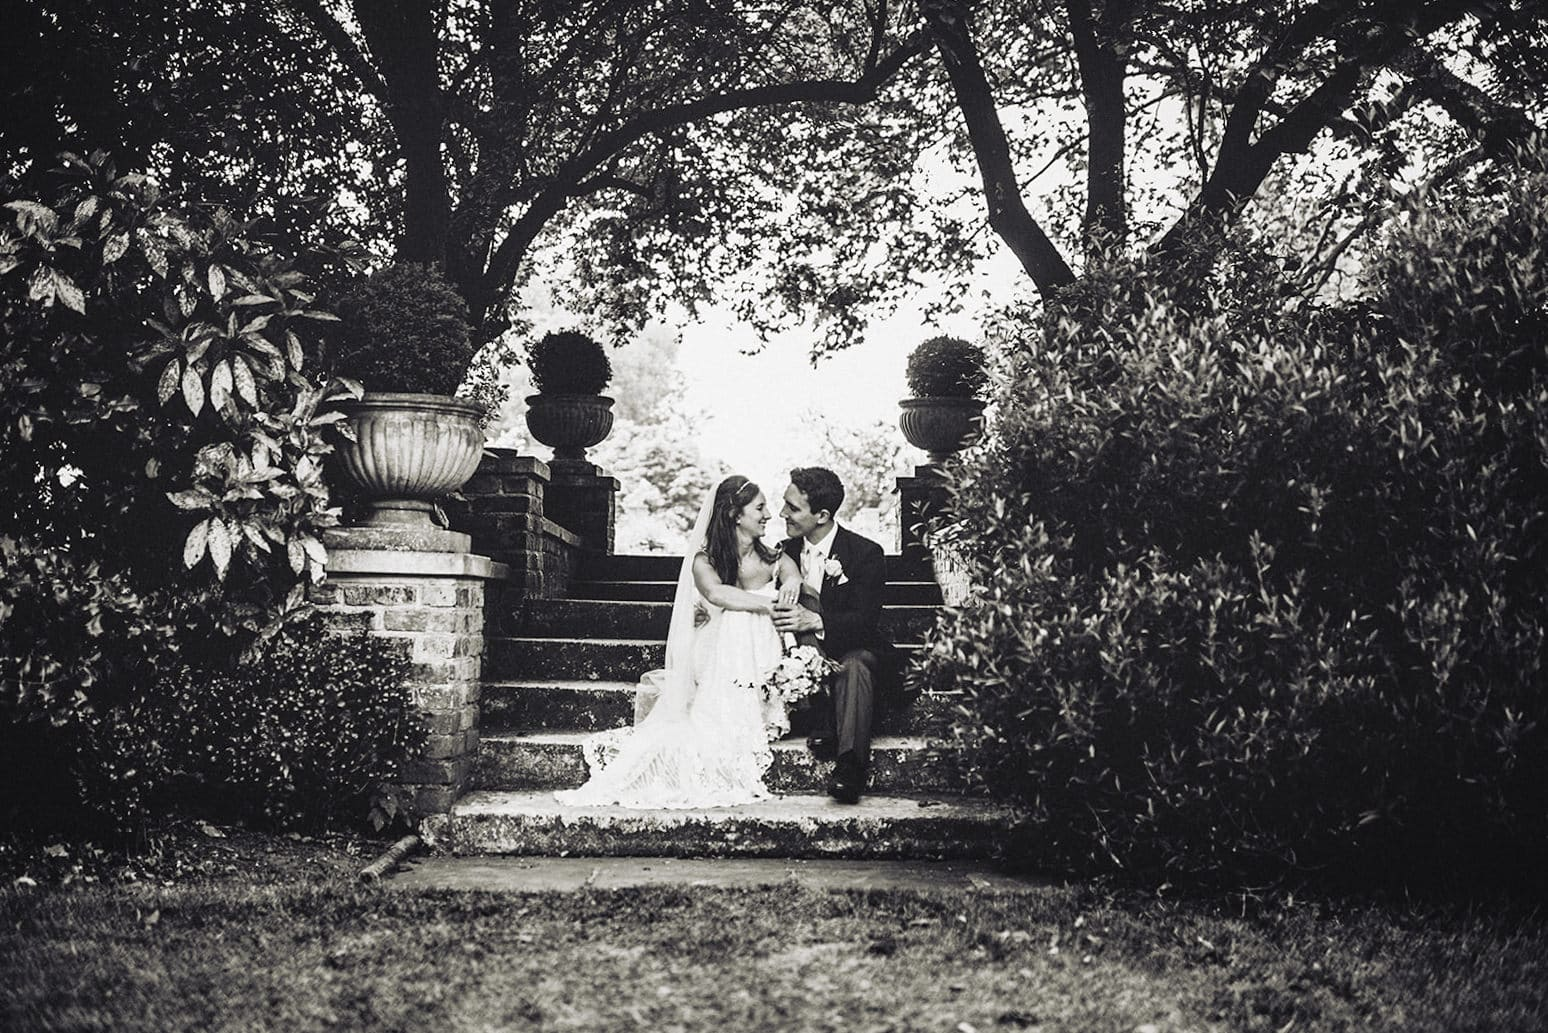 Bride and groom sit on the steps at the Hurlingham Club's sunken garden